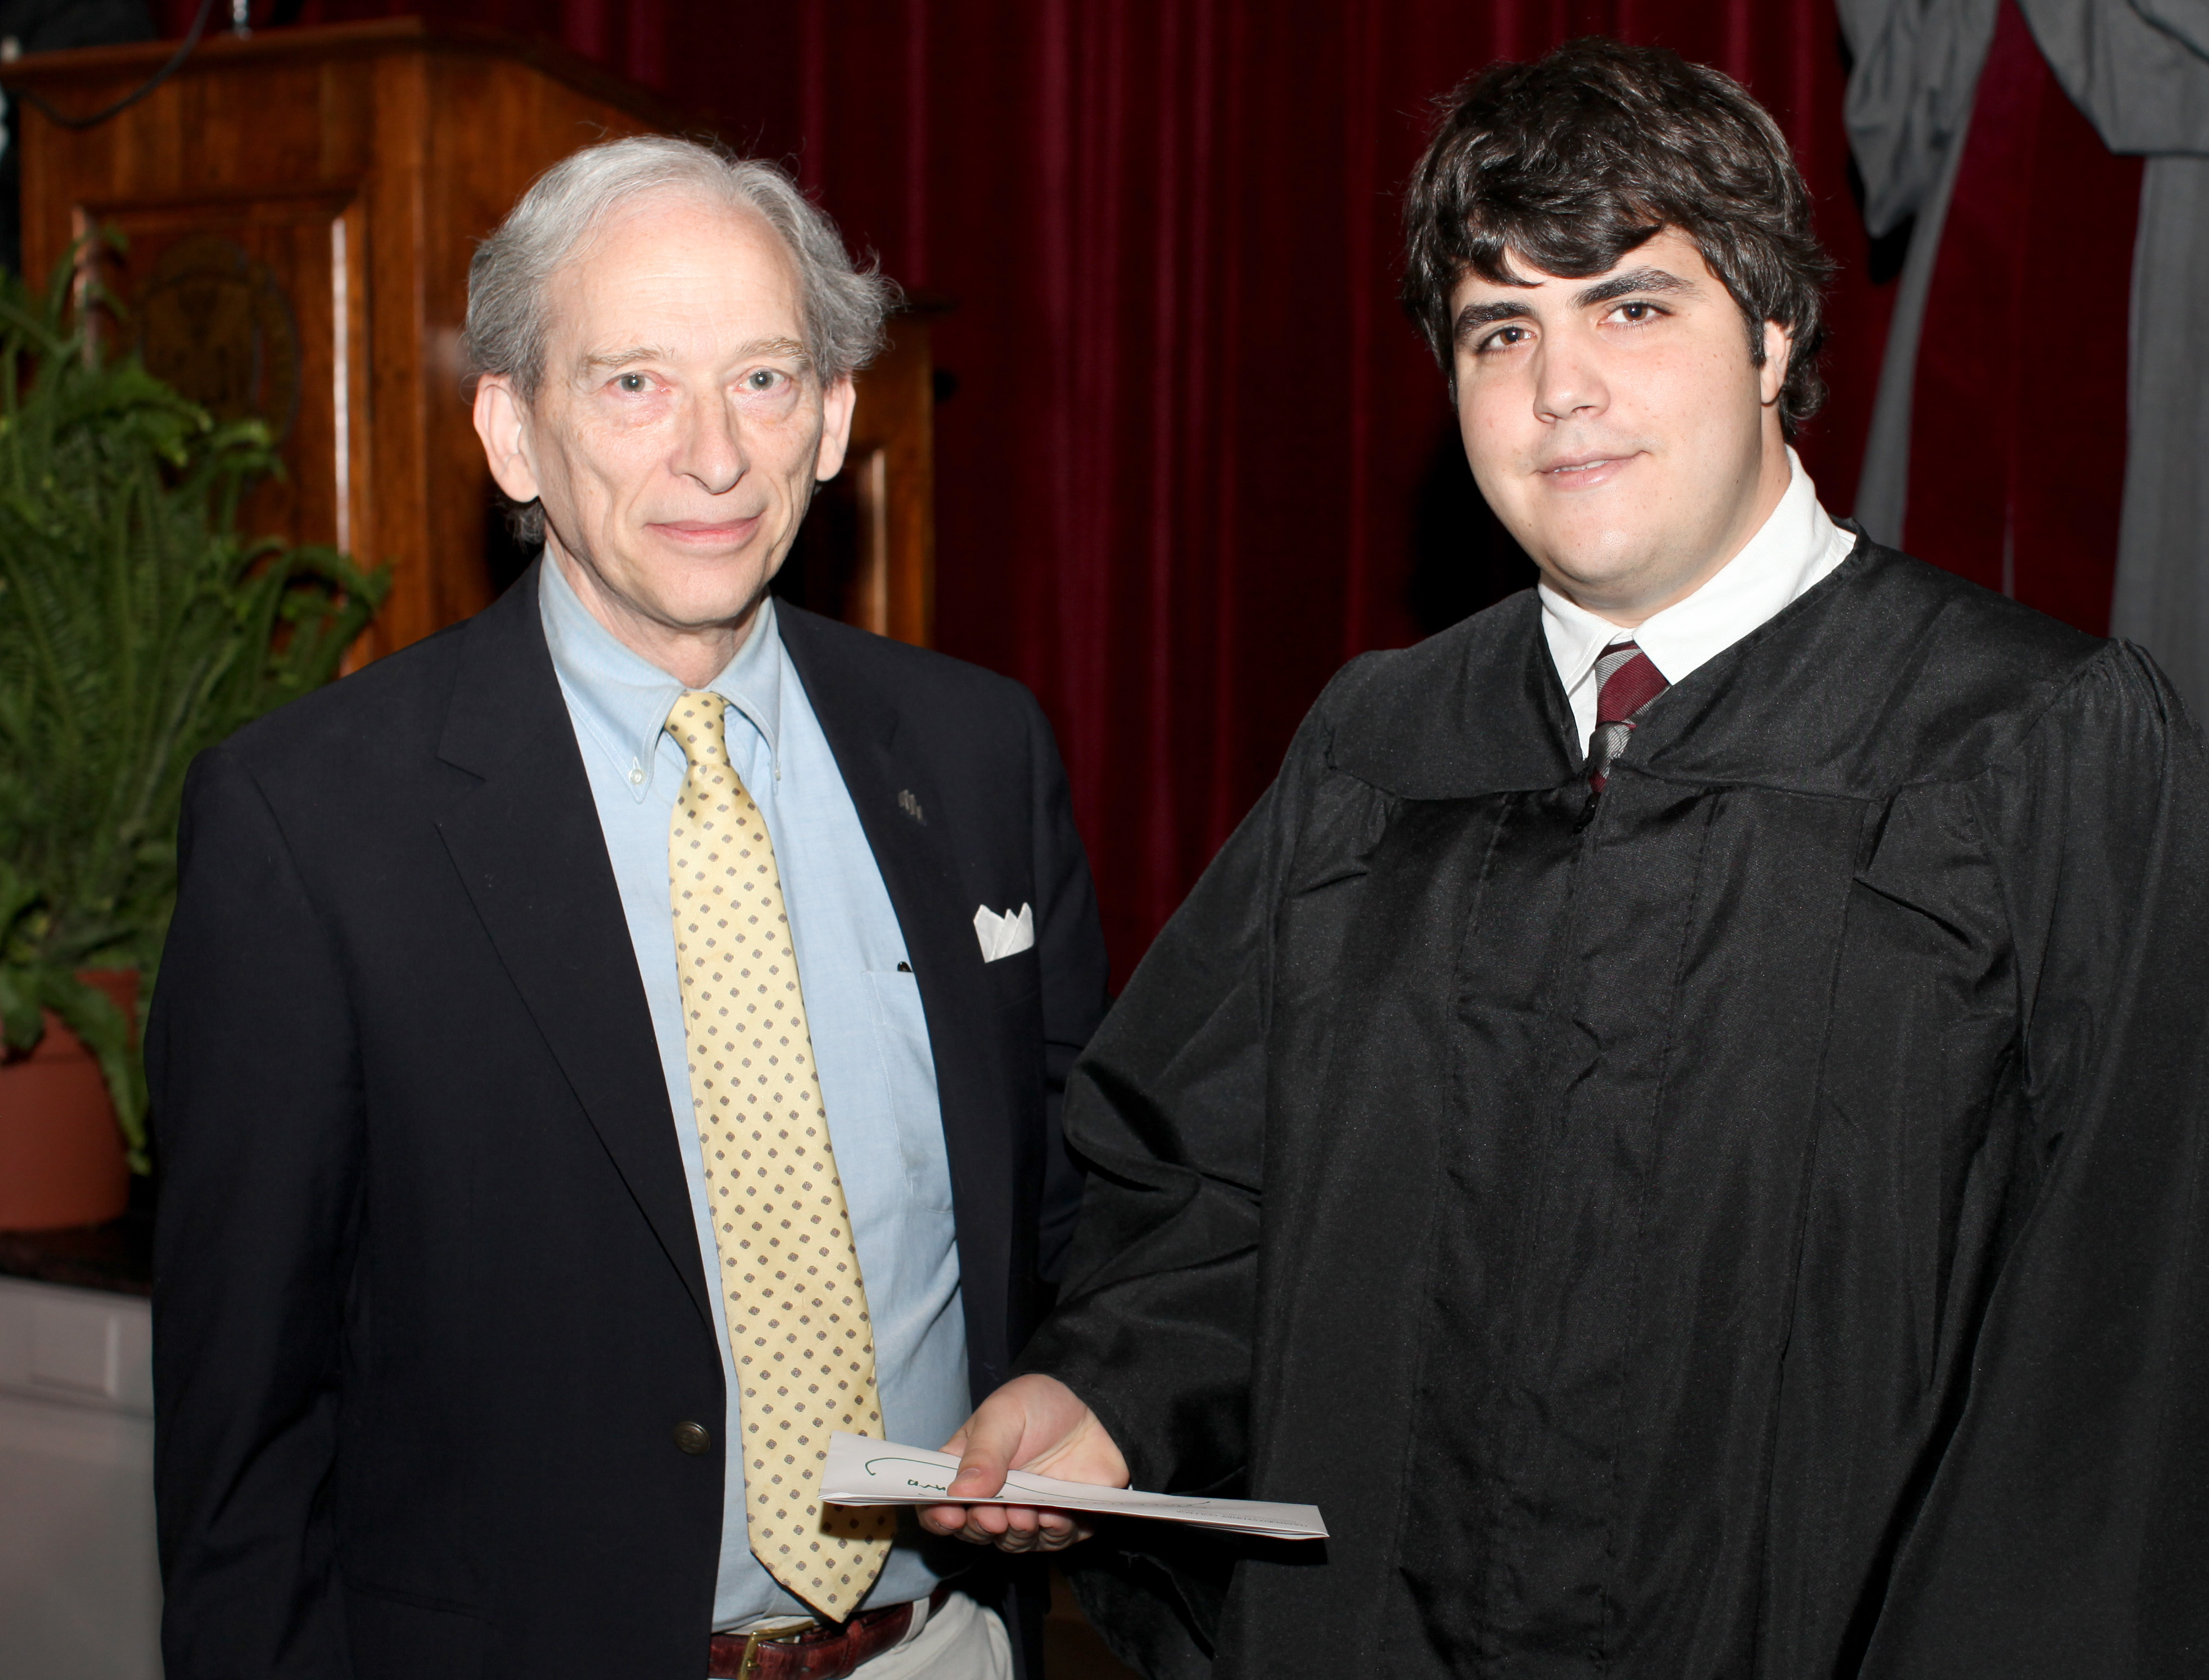 Dr. Richard McClintock giving an award to a student on the right.